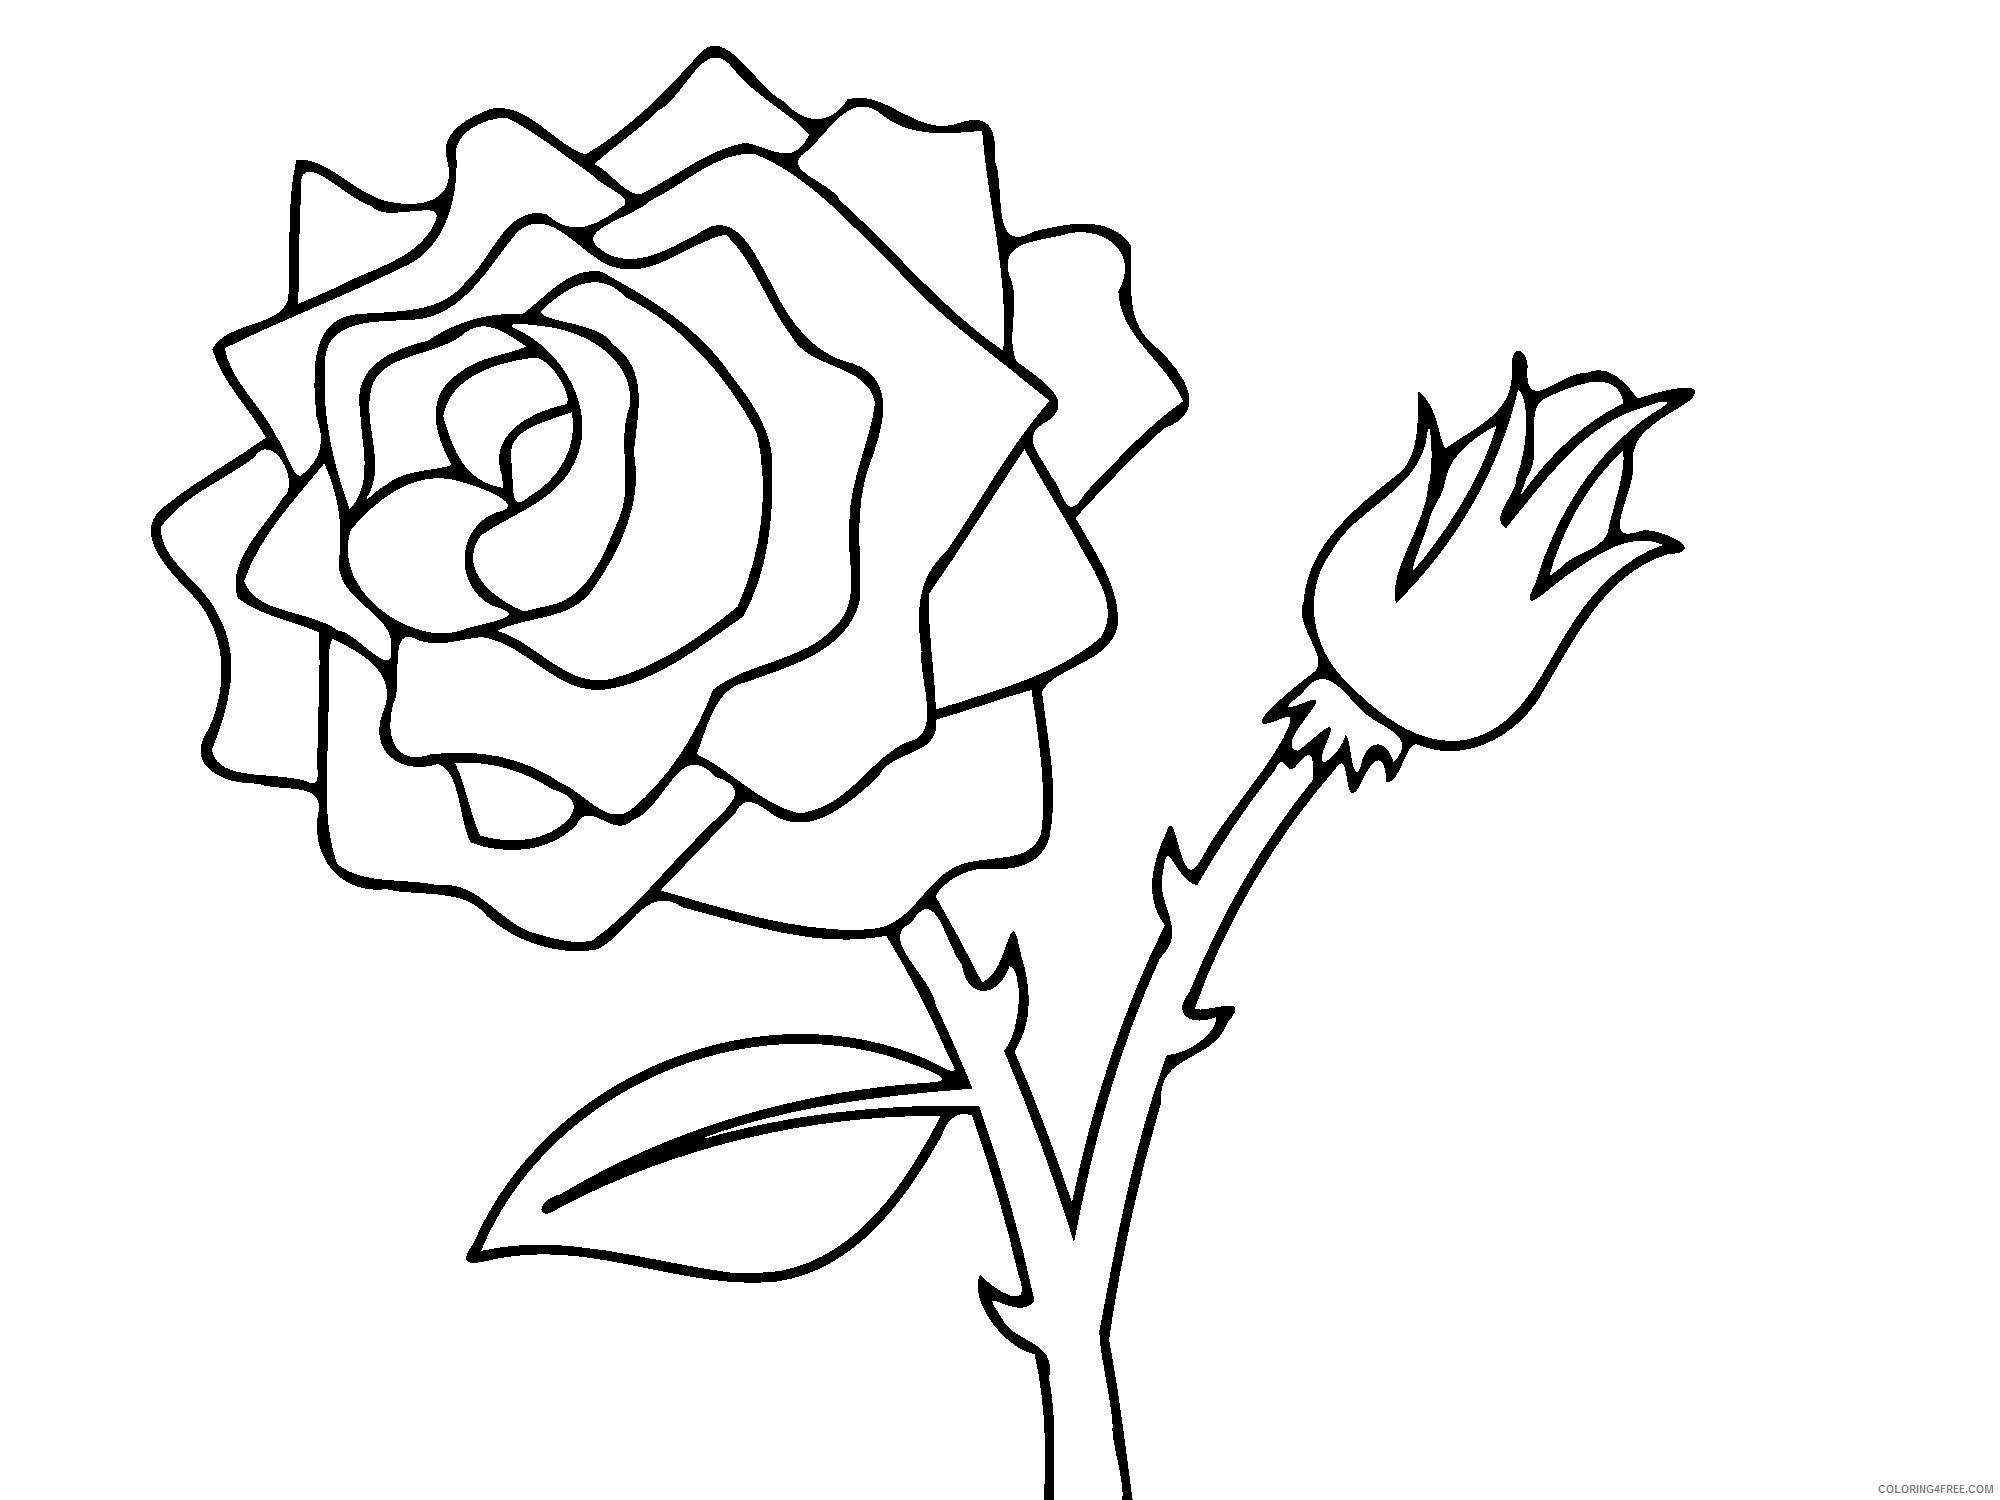 rose coloring pages free to print Coloring4free